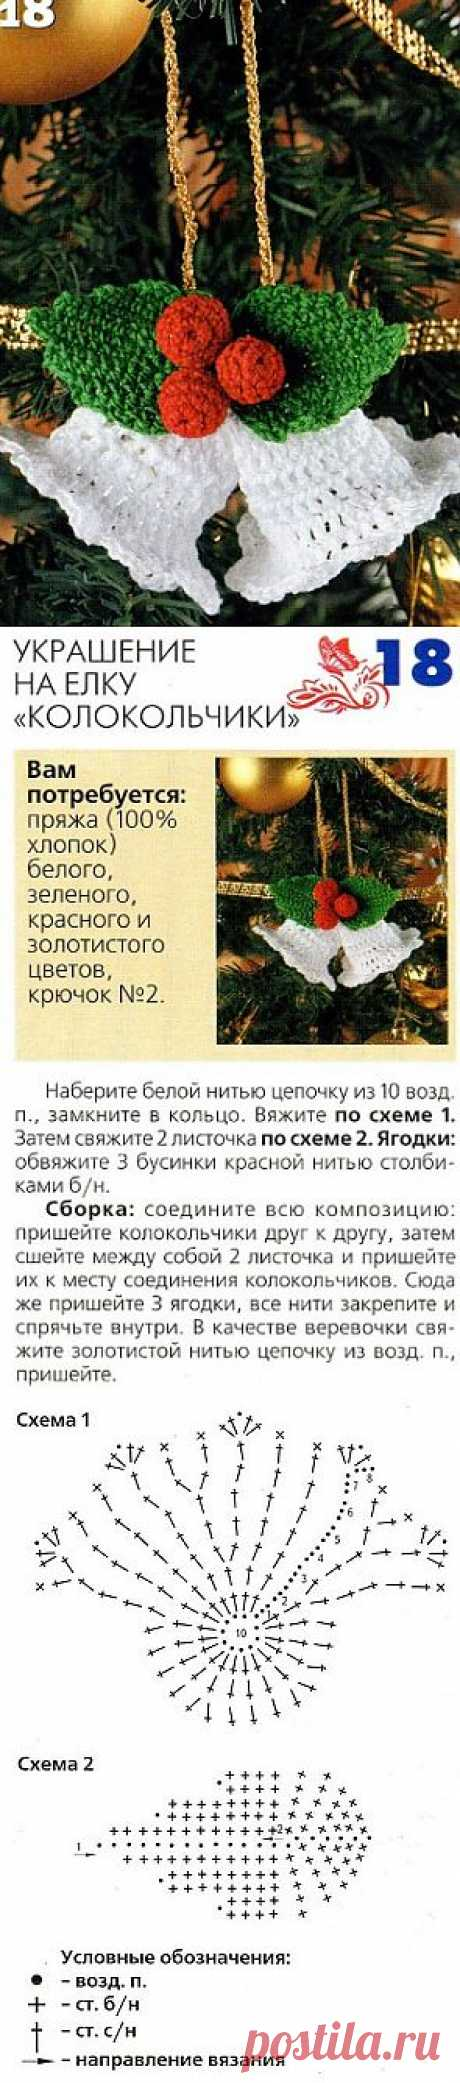 Hand bell on a fir-tree a hook \/ New Year's gifts, hand-made articles and suits \/ PassionForum - master classes in needlework